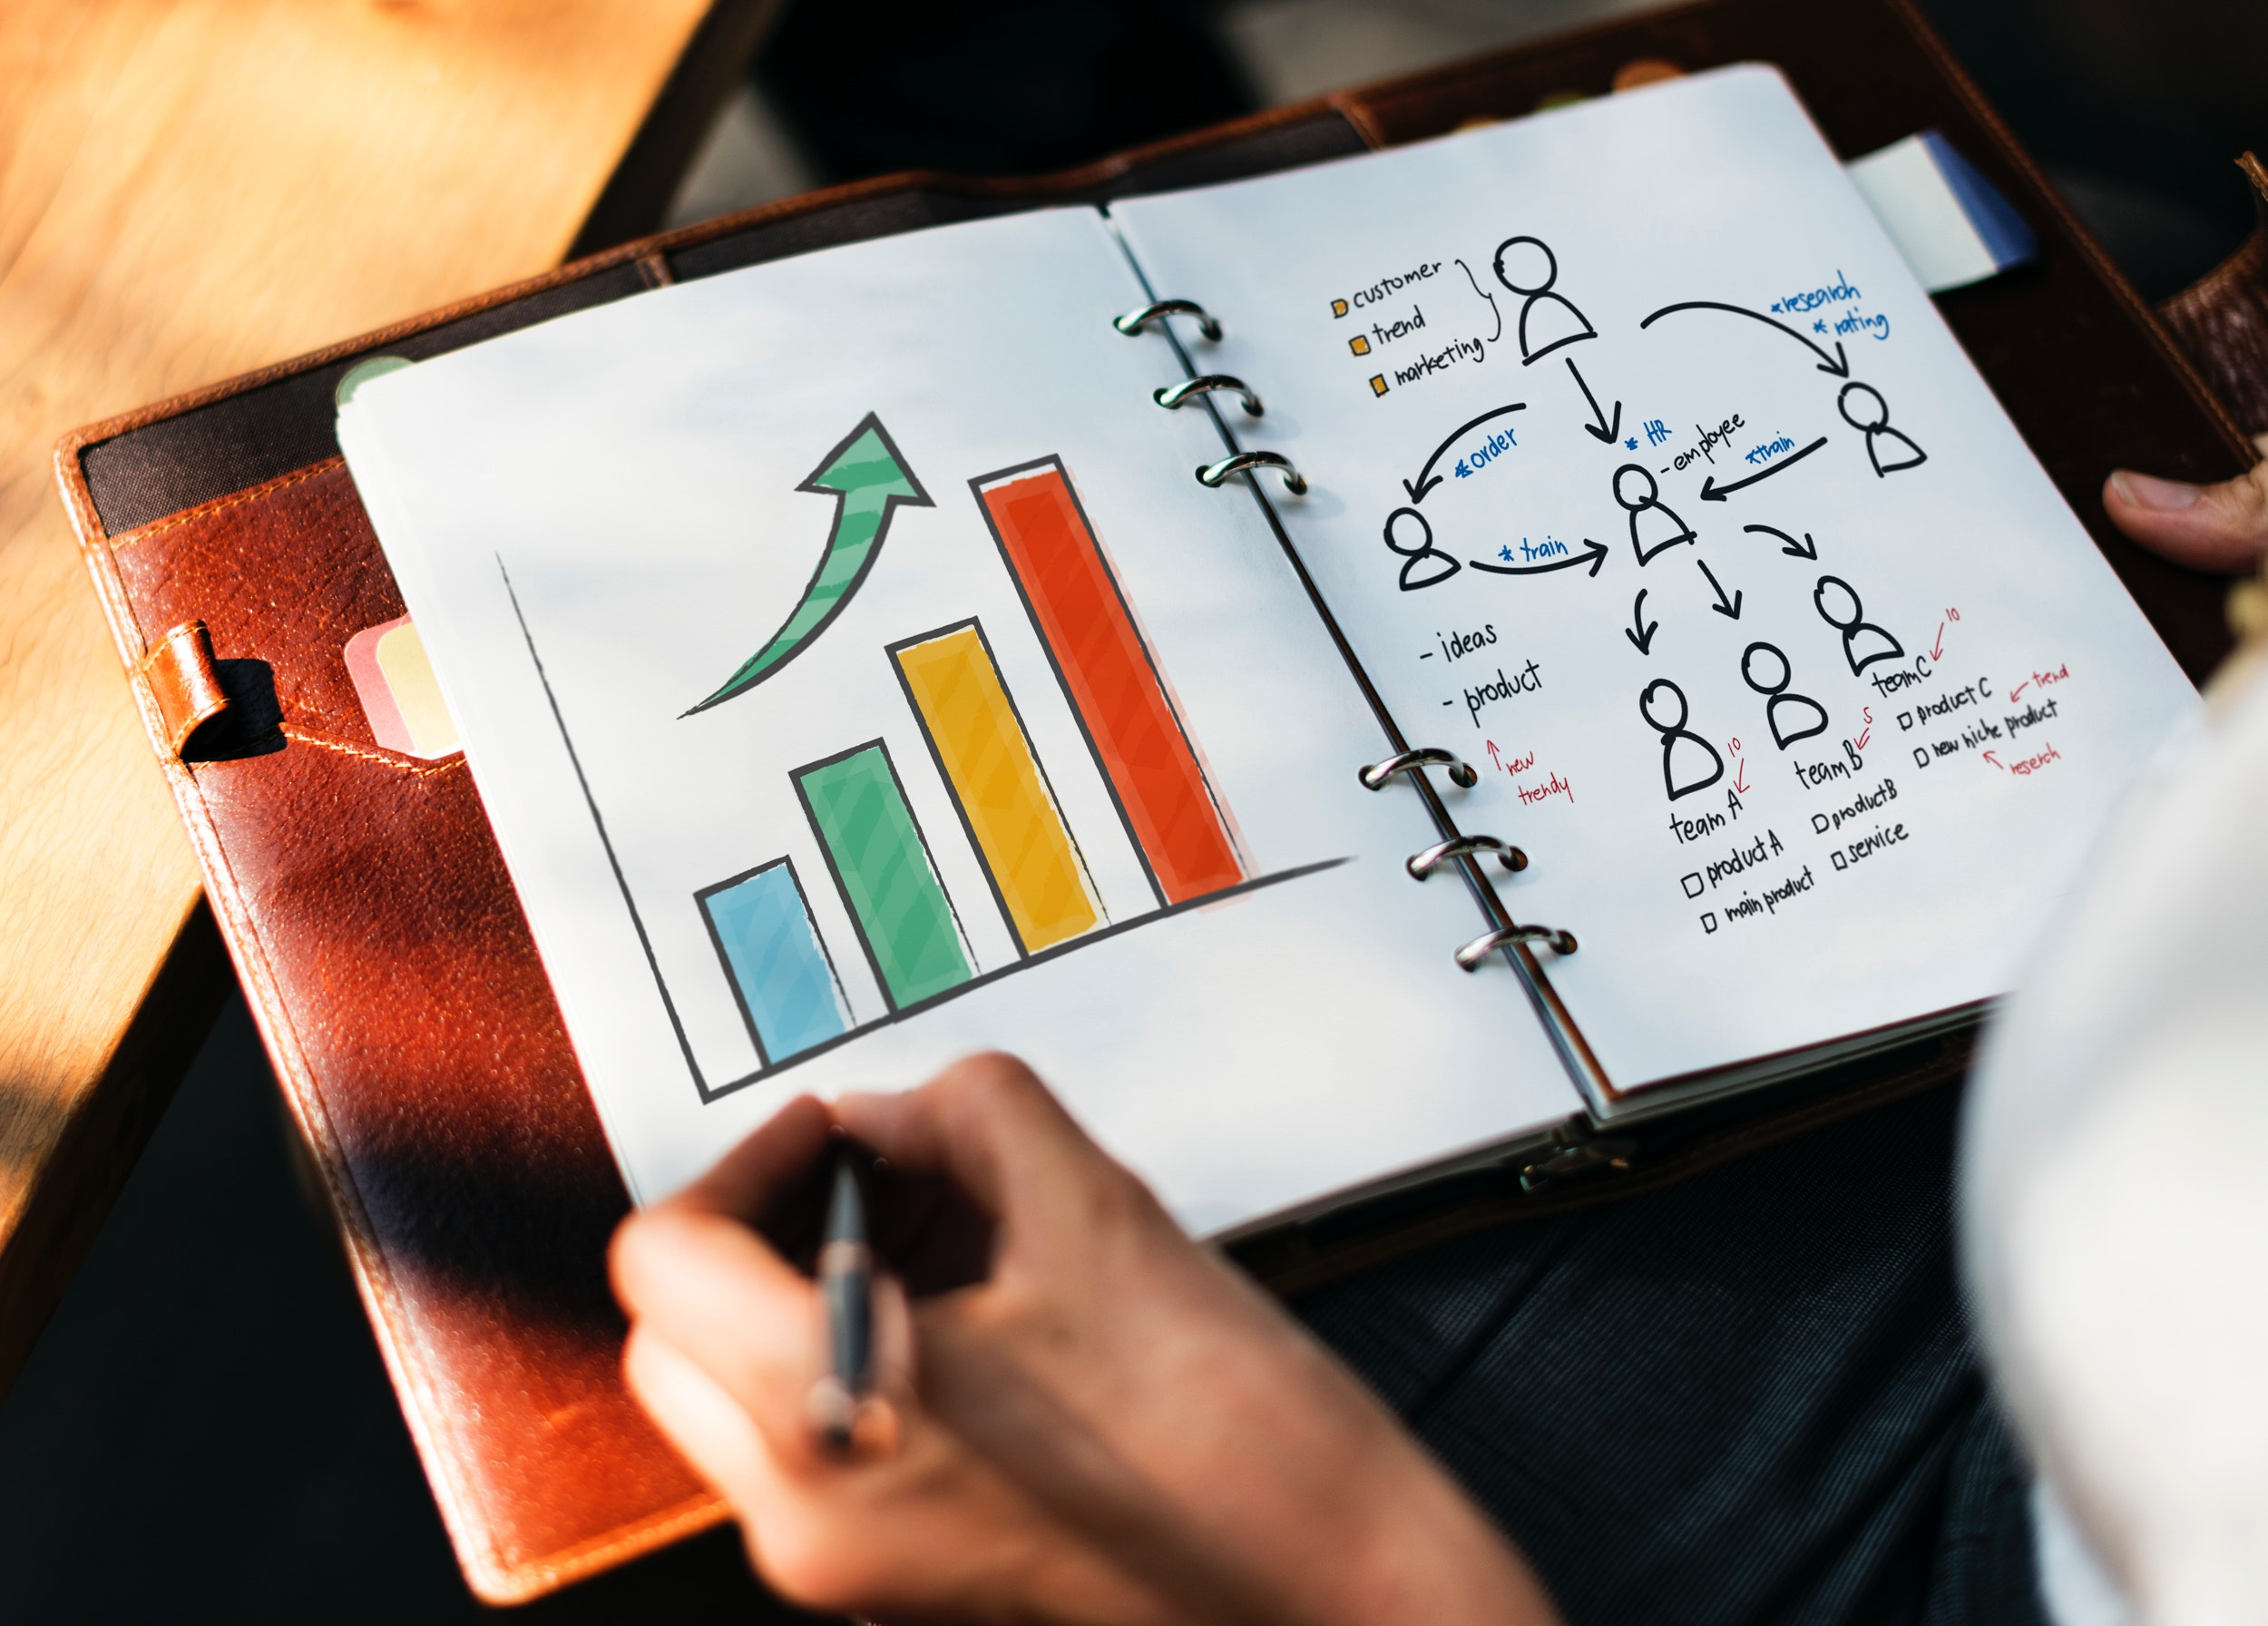 5 Steps to Creating a Killer Marketing Plan - Explore an